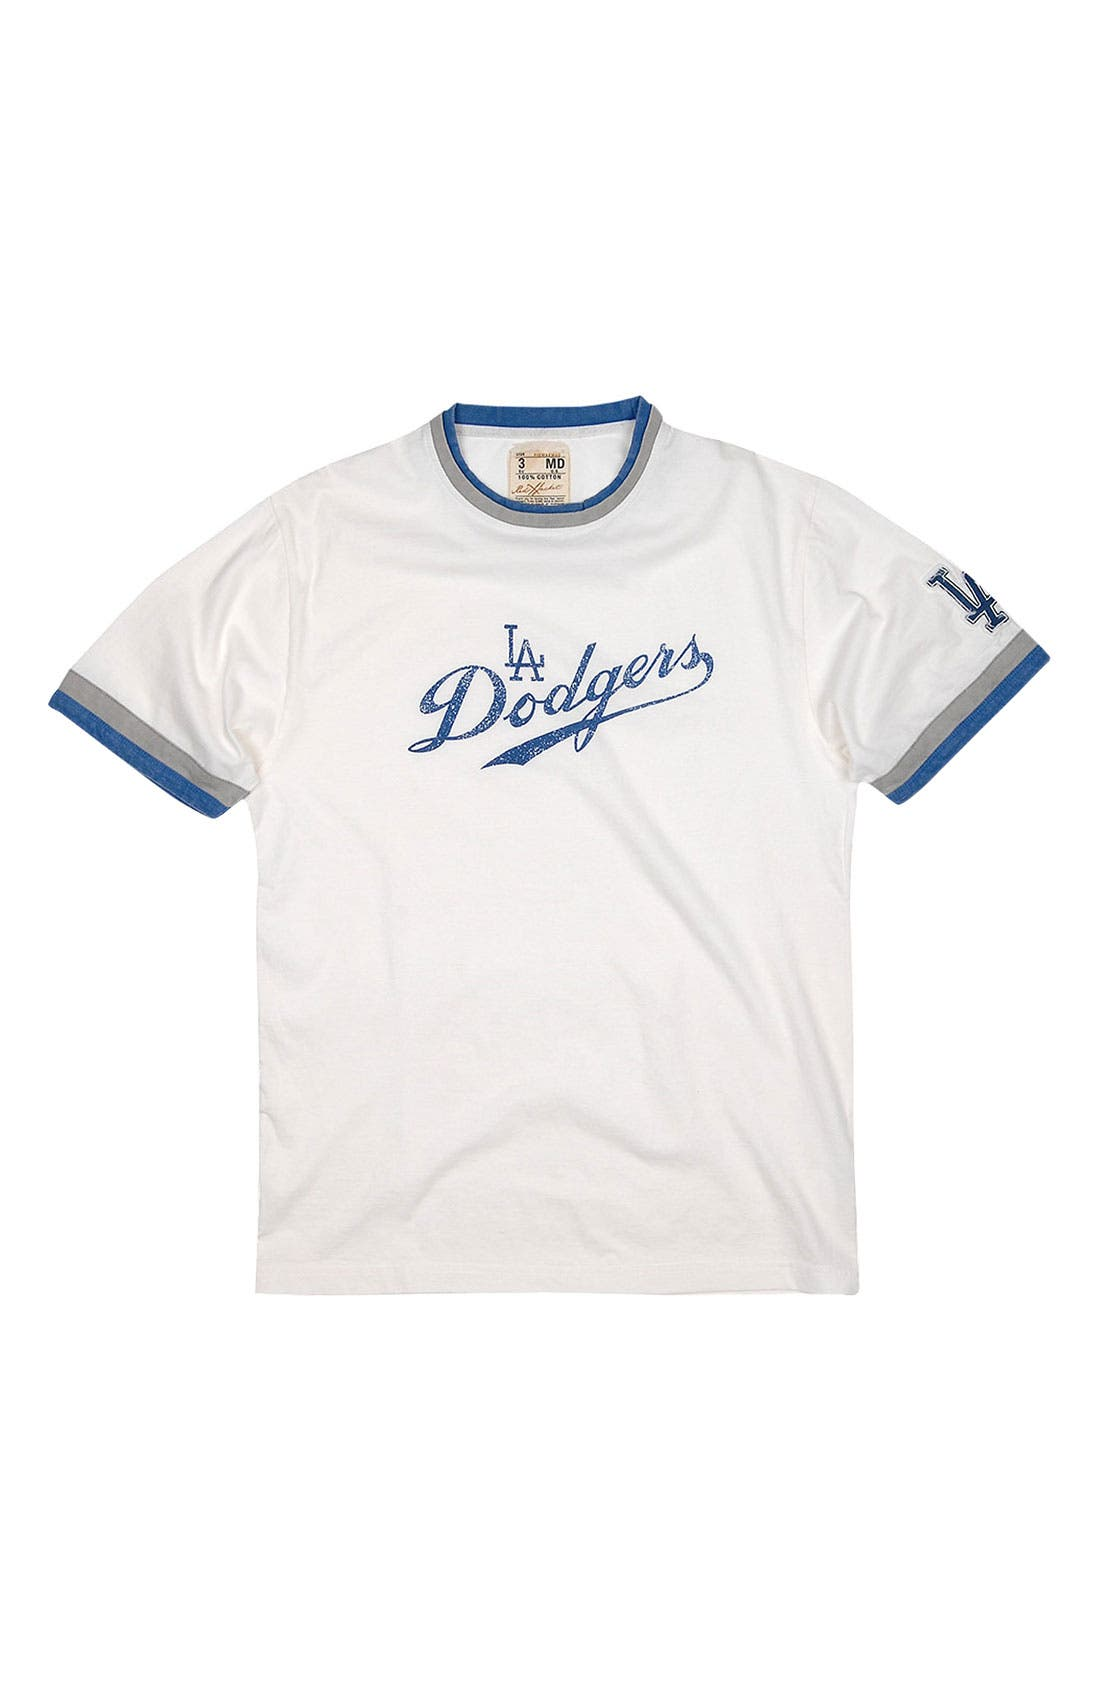 'Los Angeles Dodgers' Trim Fit Ringer T-Shirt,                             Main thumbnail 1, color,                             White - Dodgers